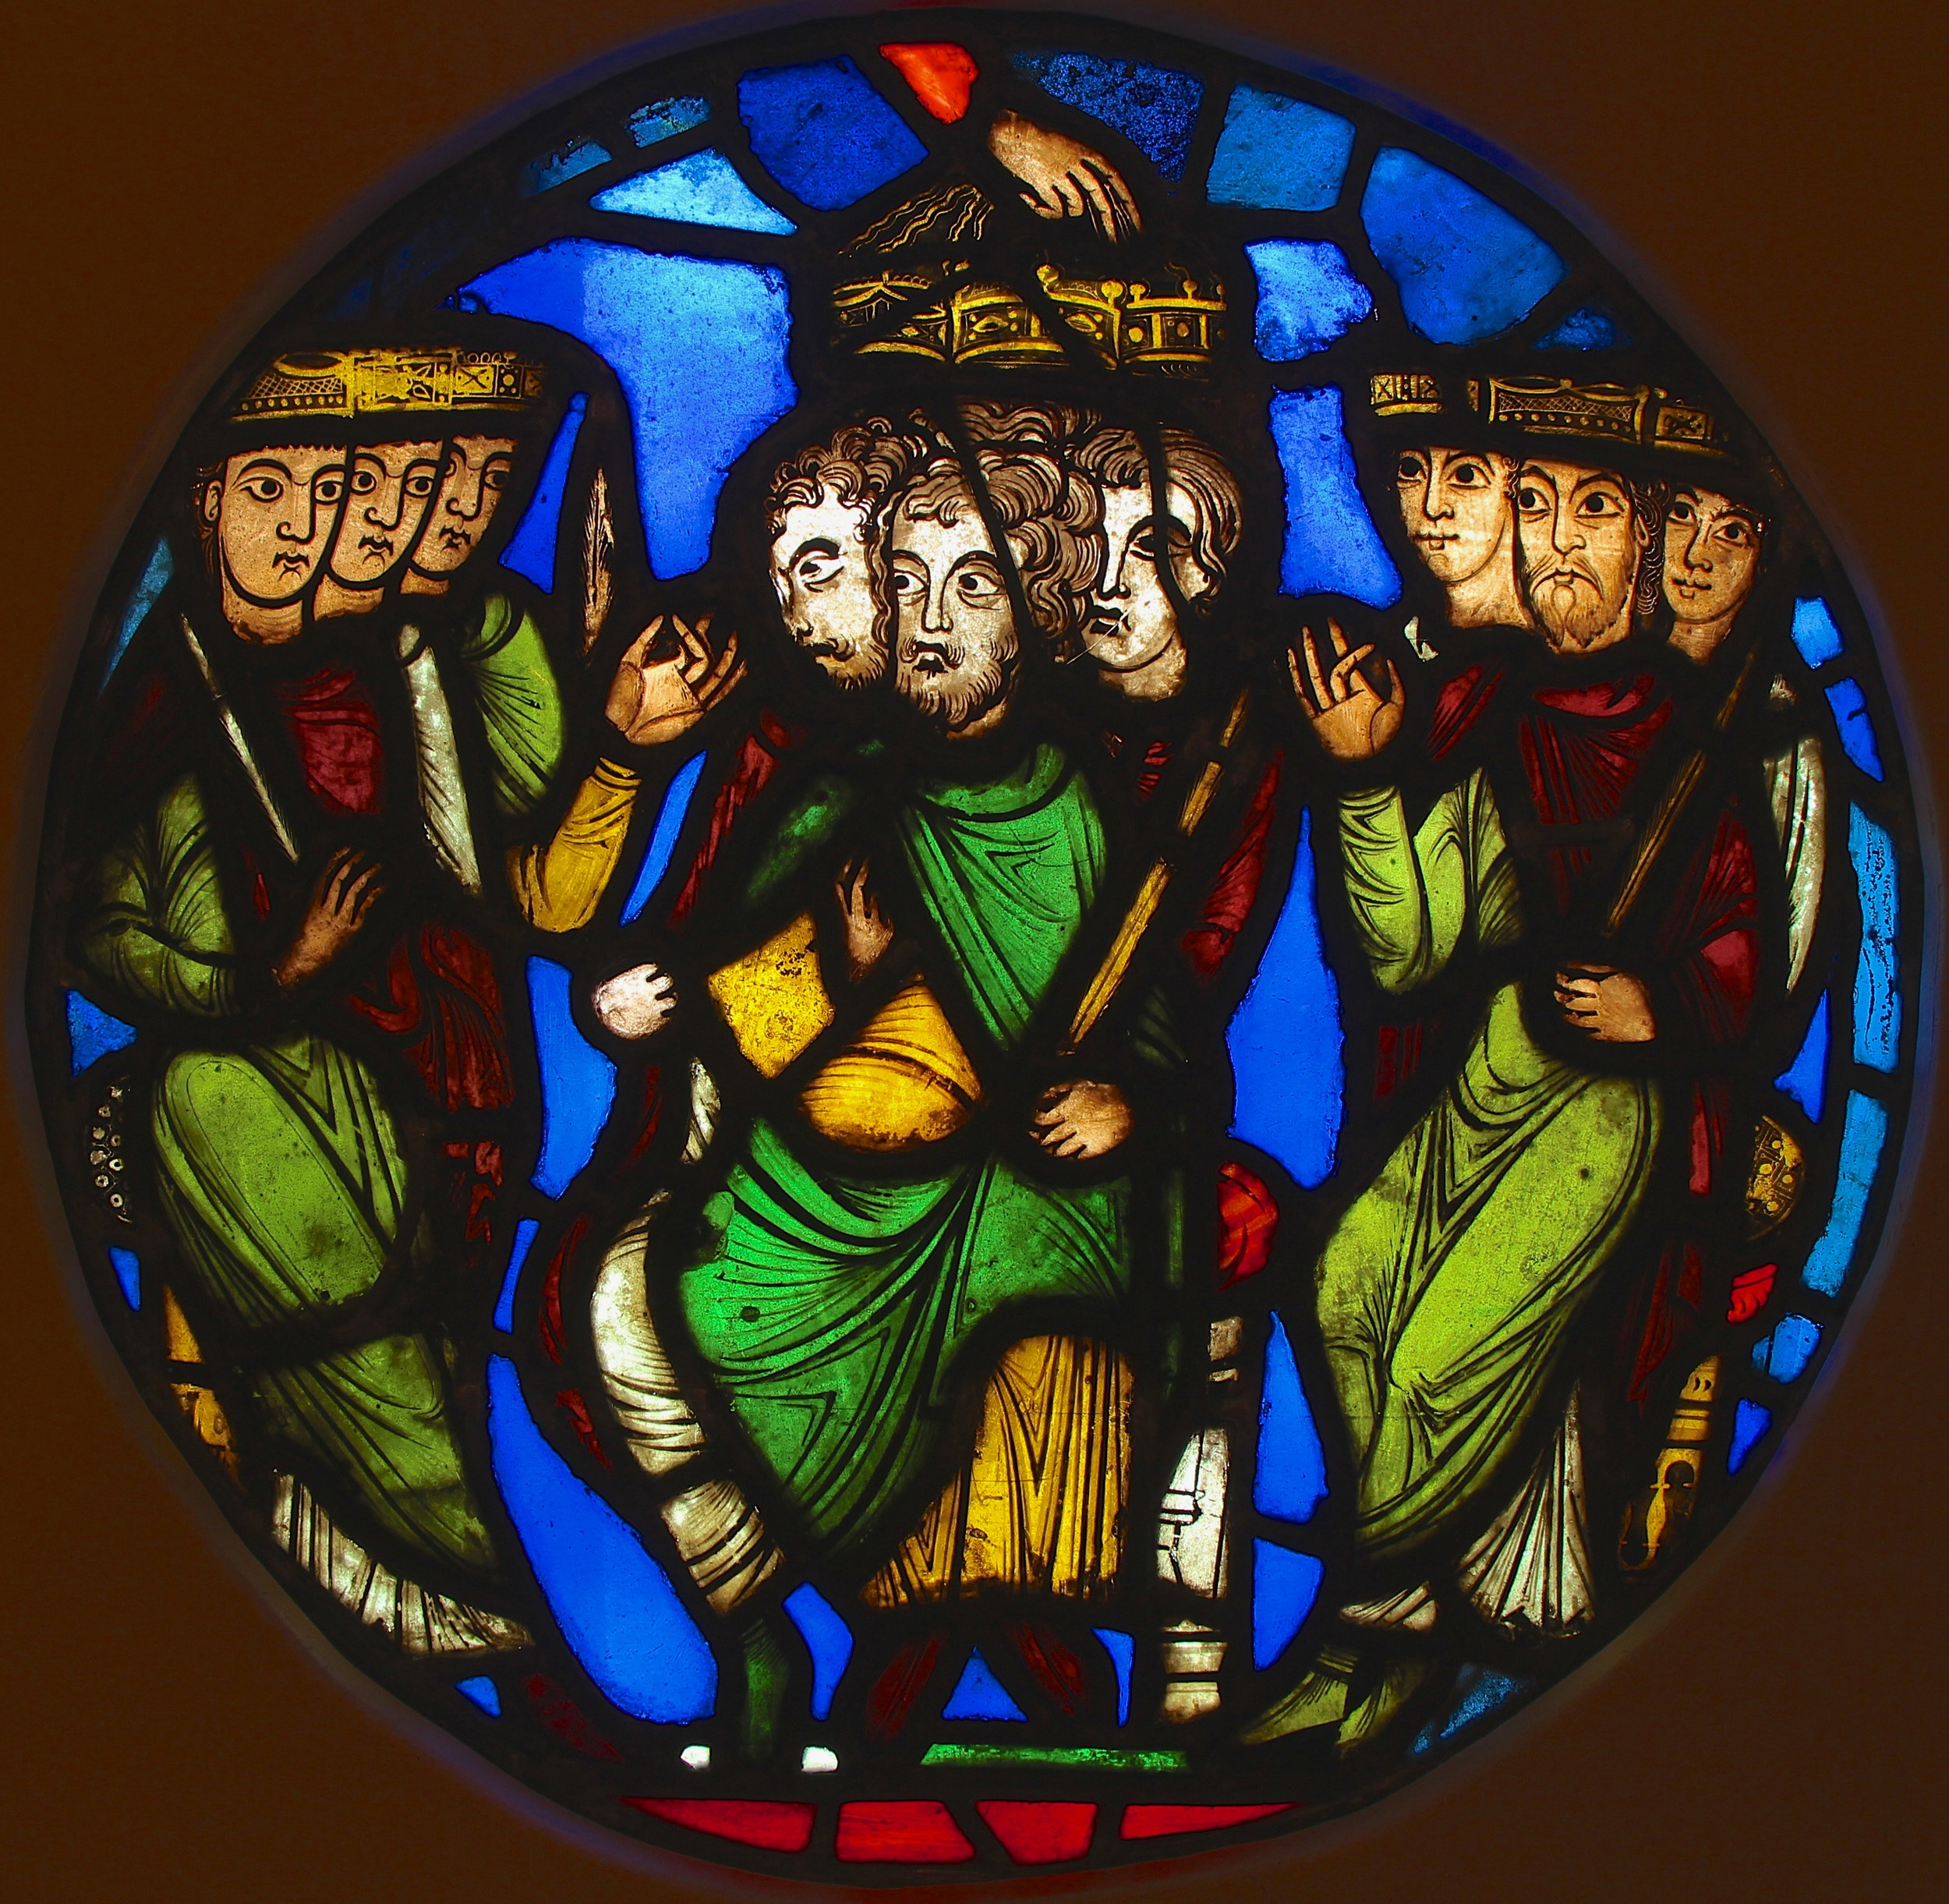 A Triple Coronation  from the 12th century First Crusade Window at the Abbey of Saint-Denis.